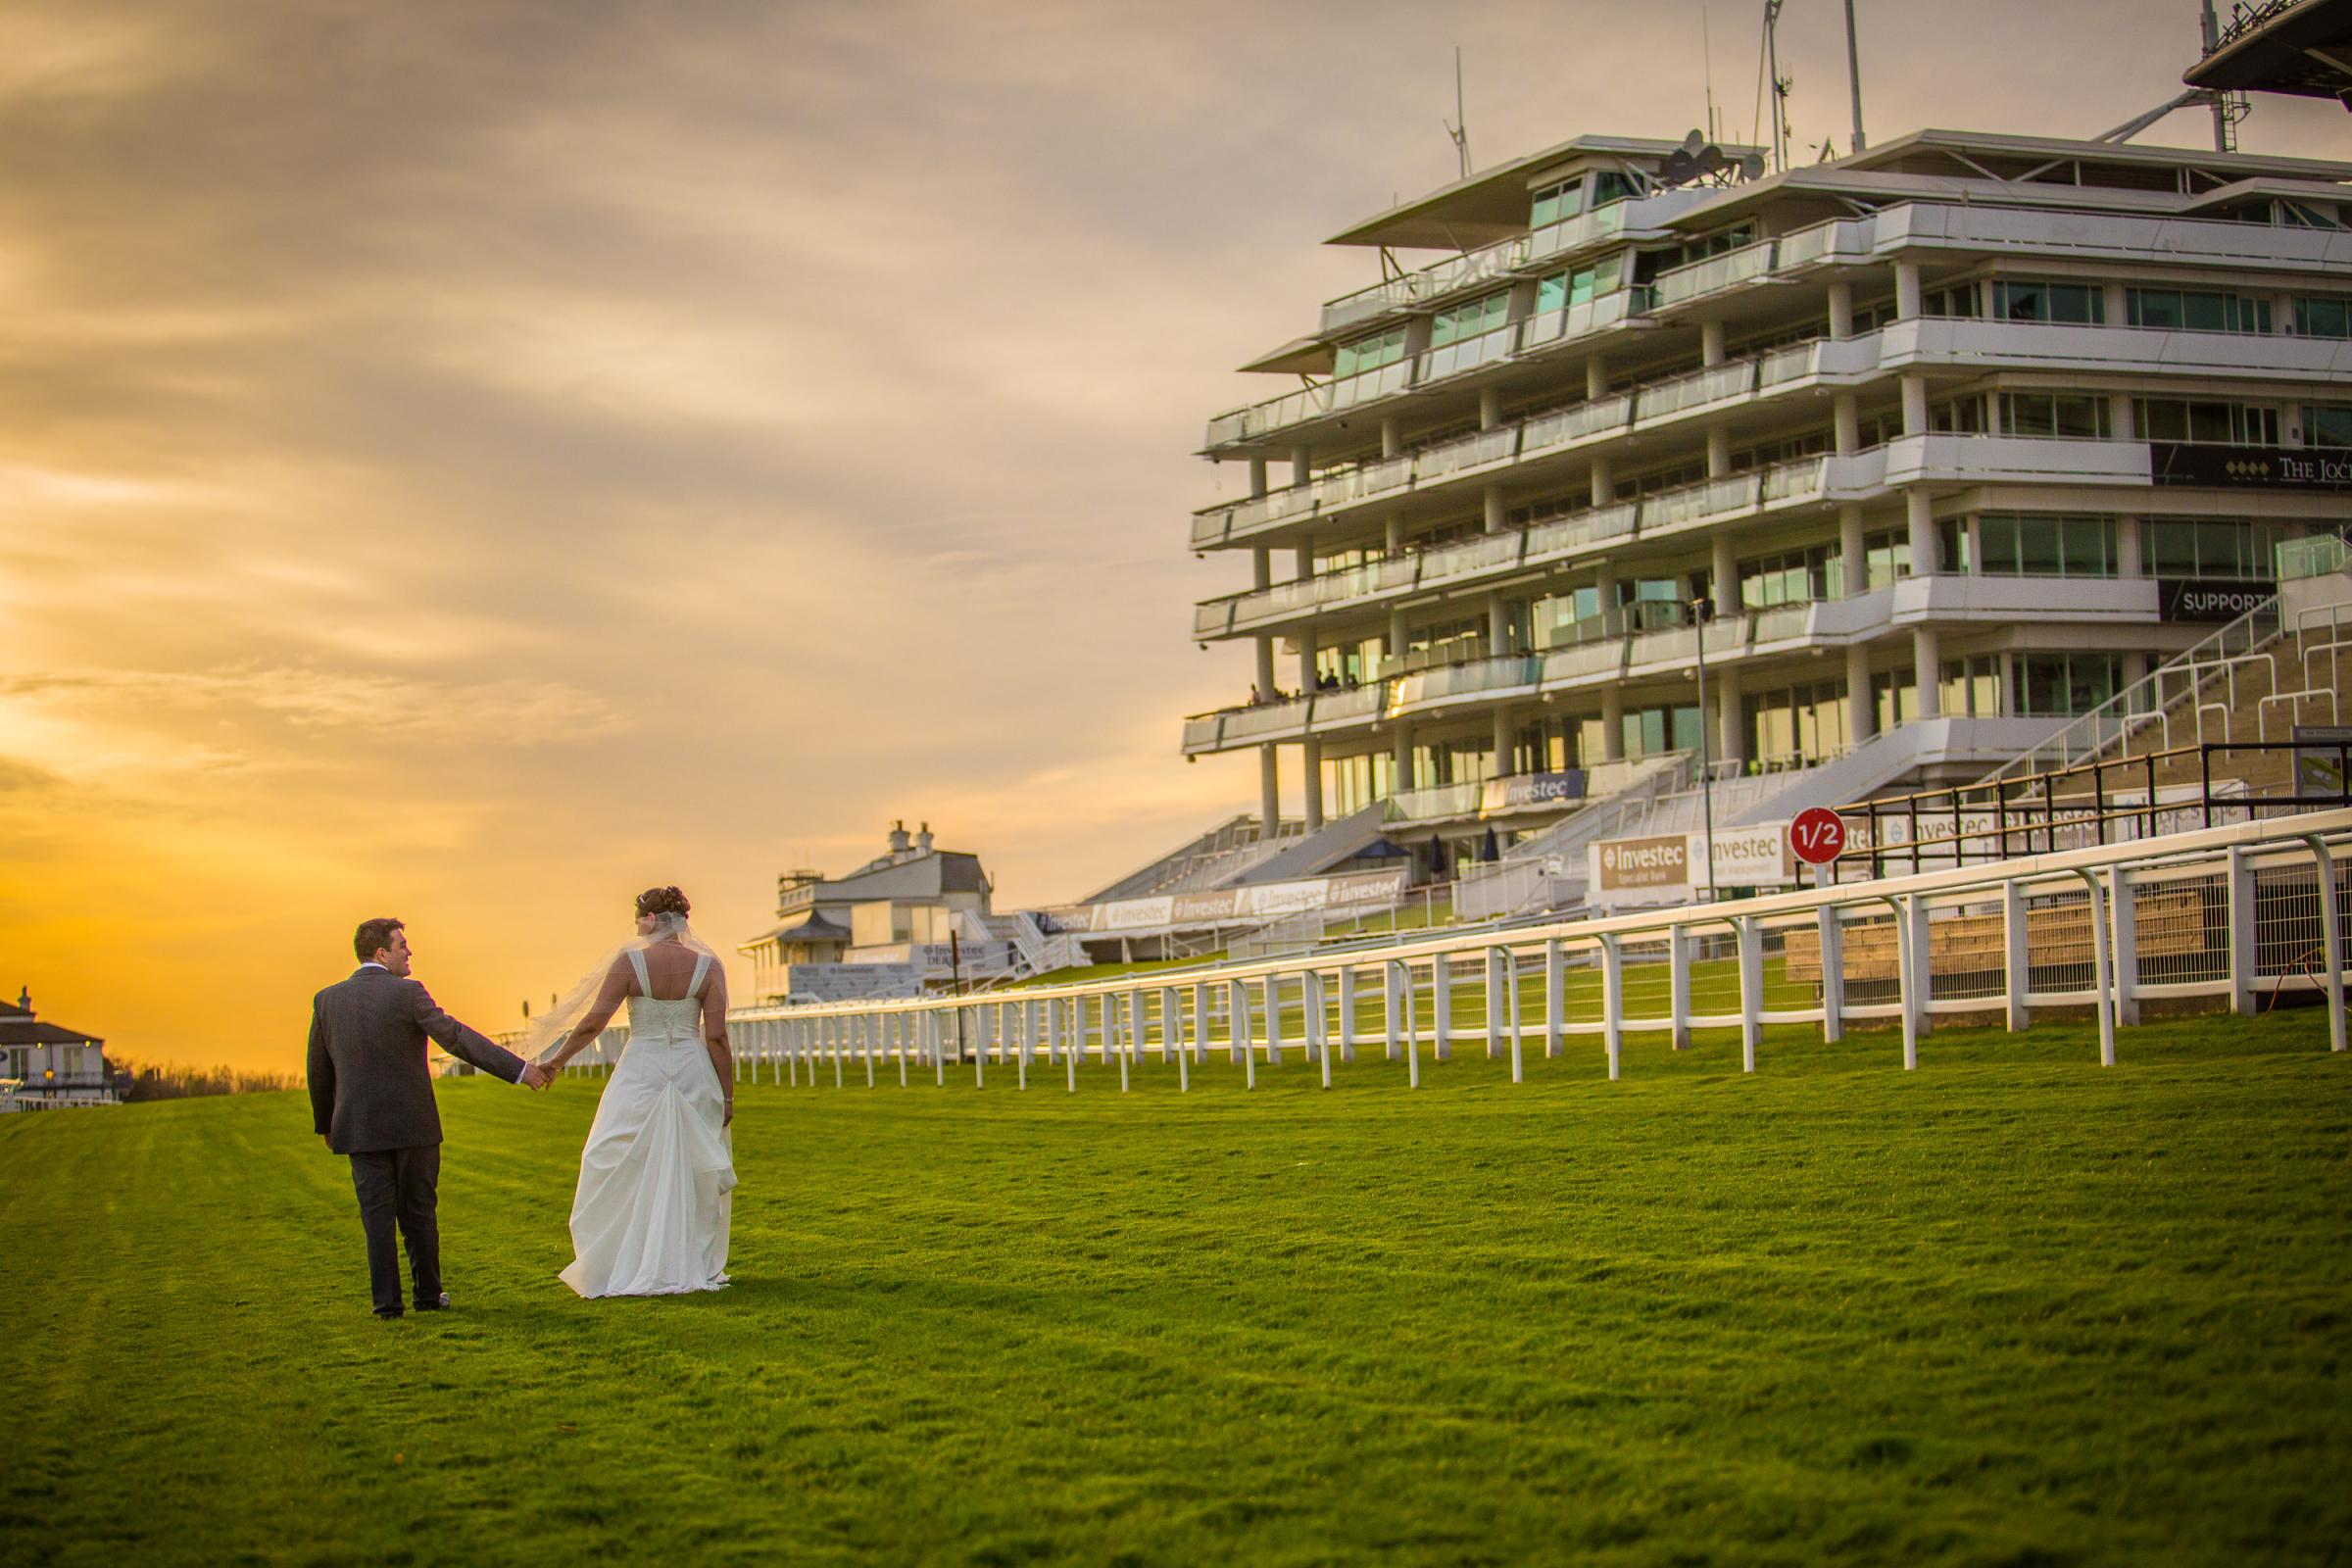 Couples can tie the knot at Epsom Downs